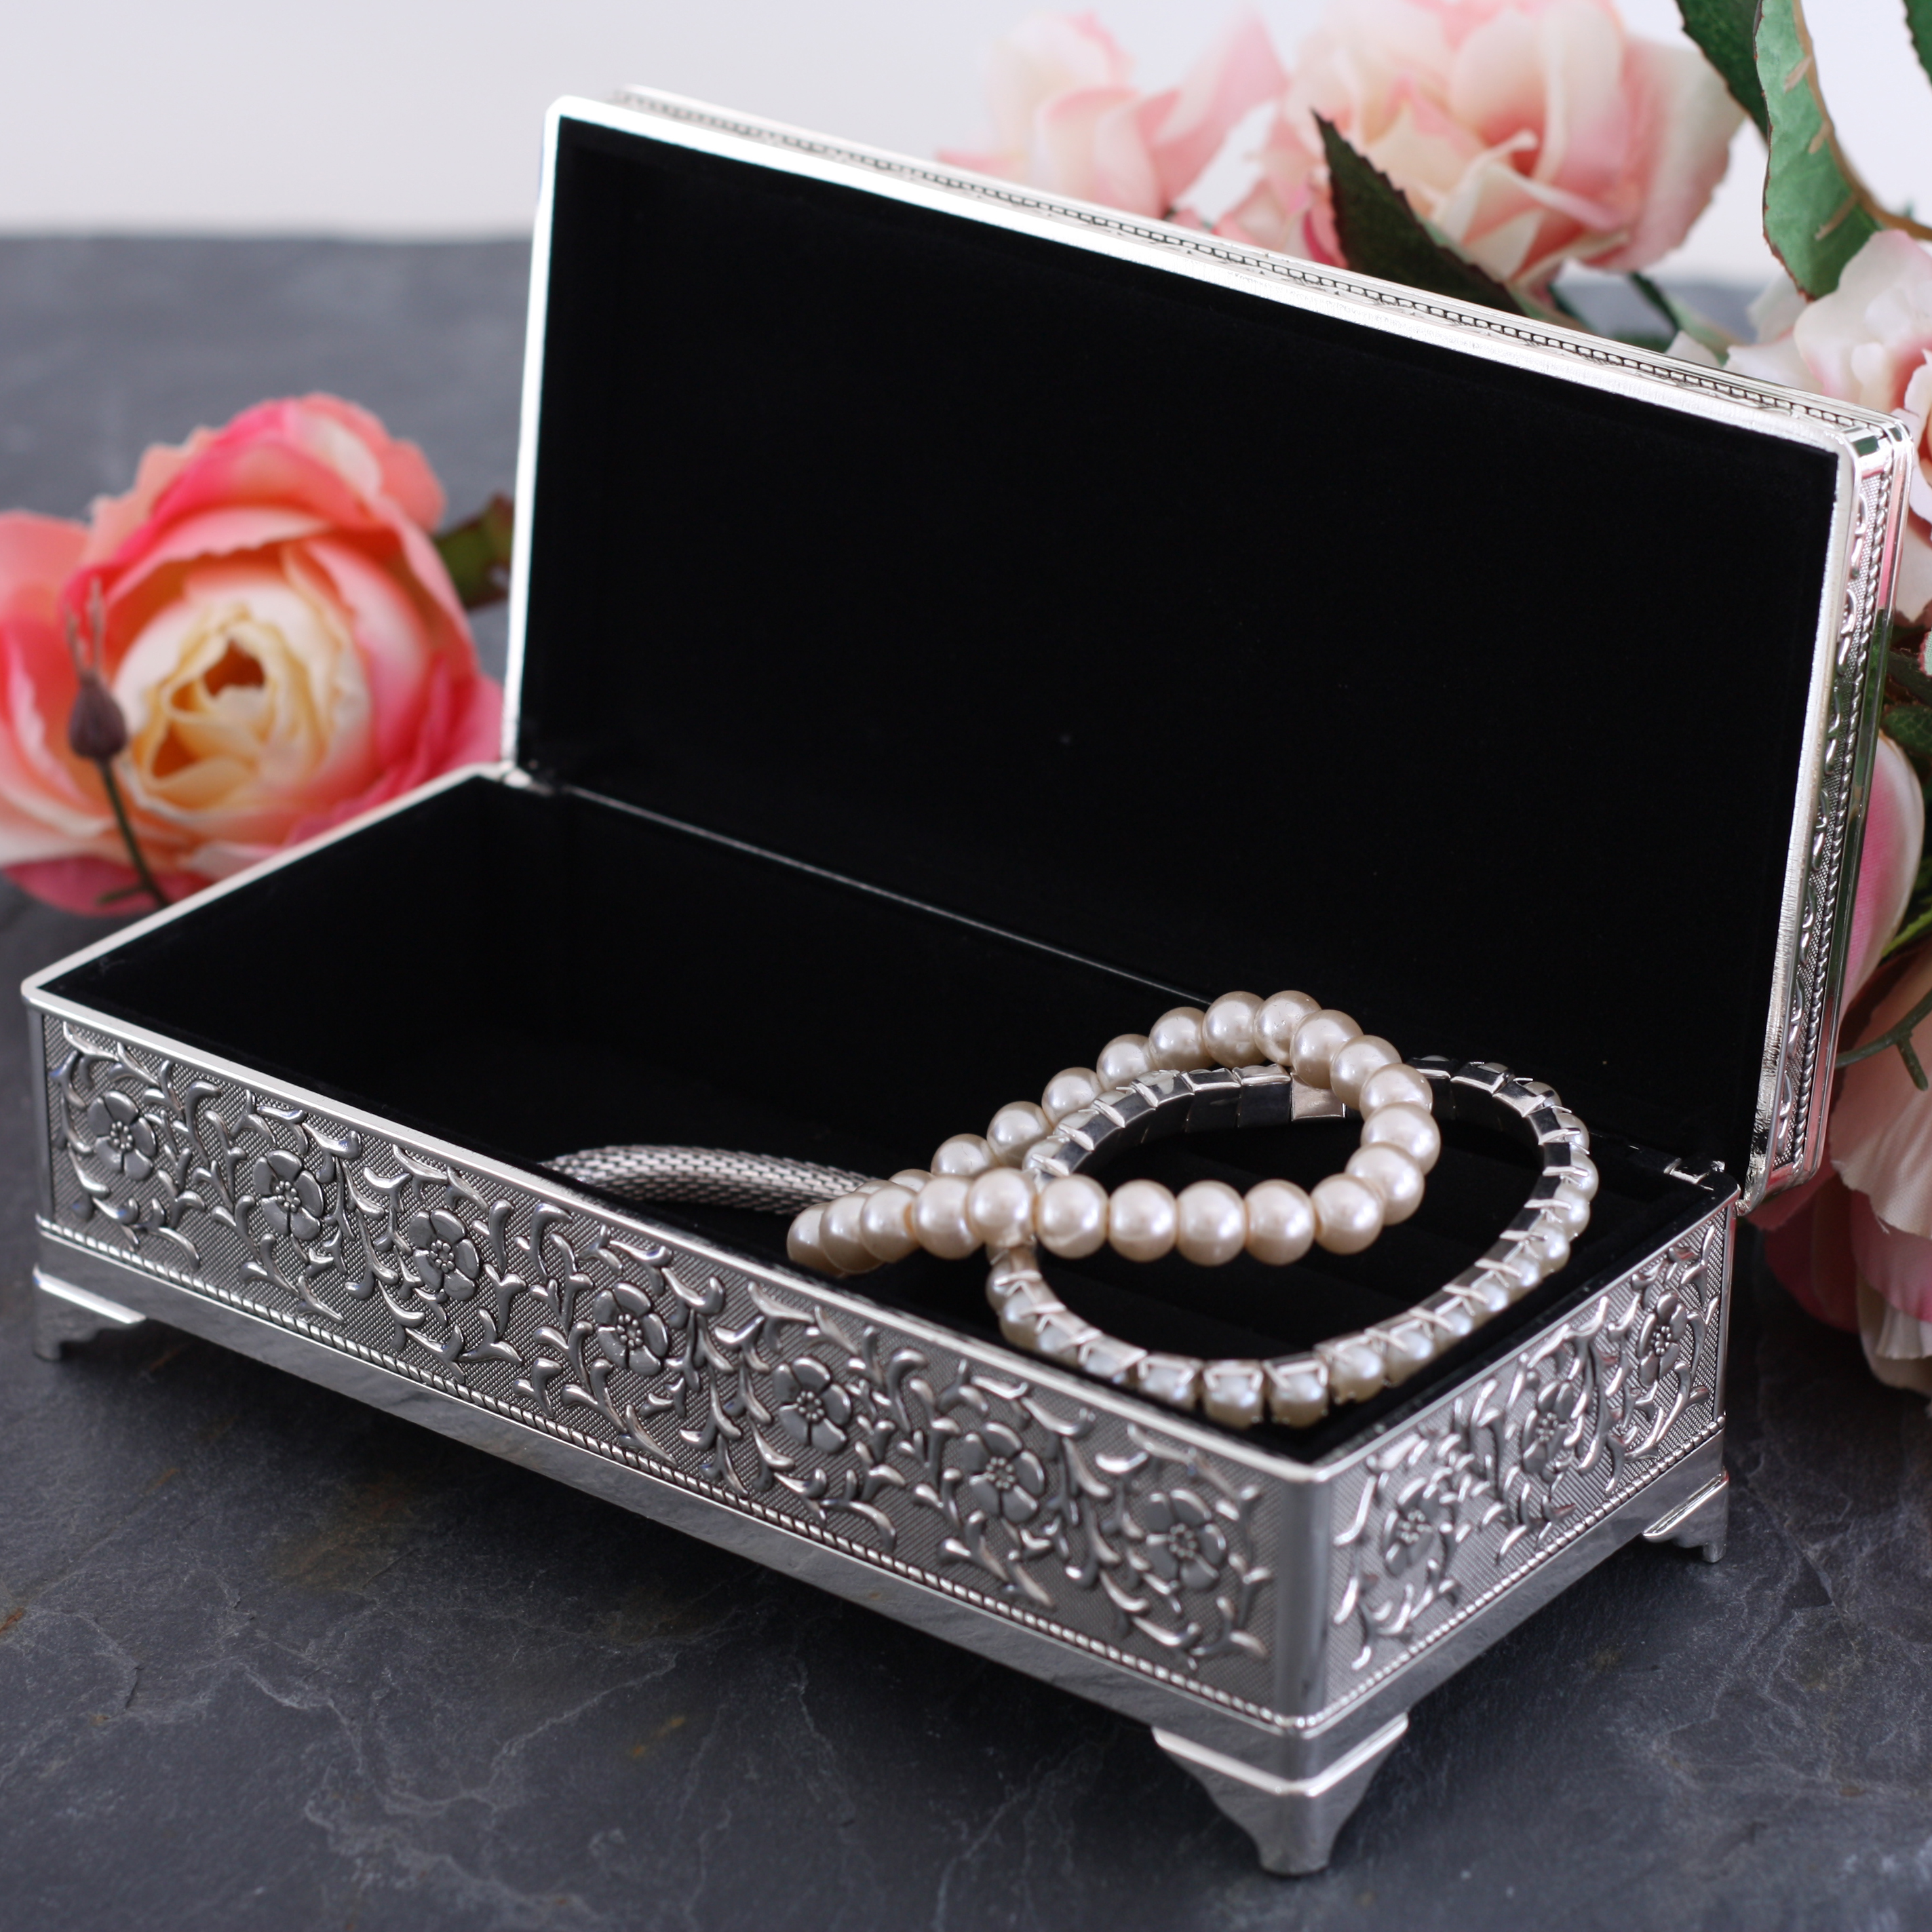 What to give for a pearl wedding